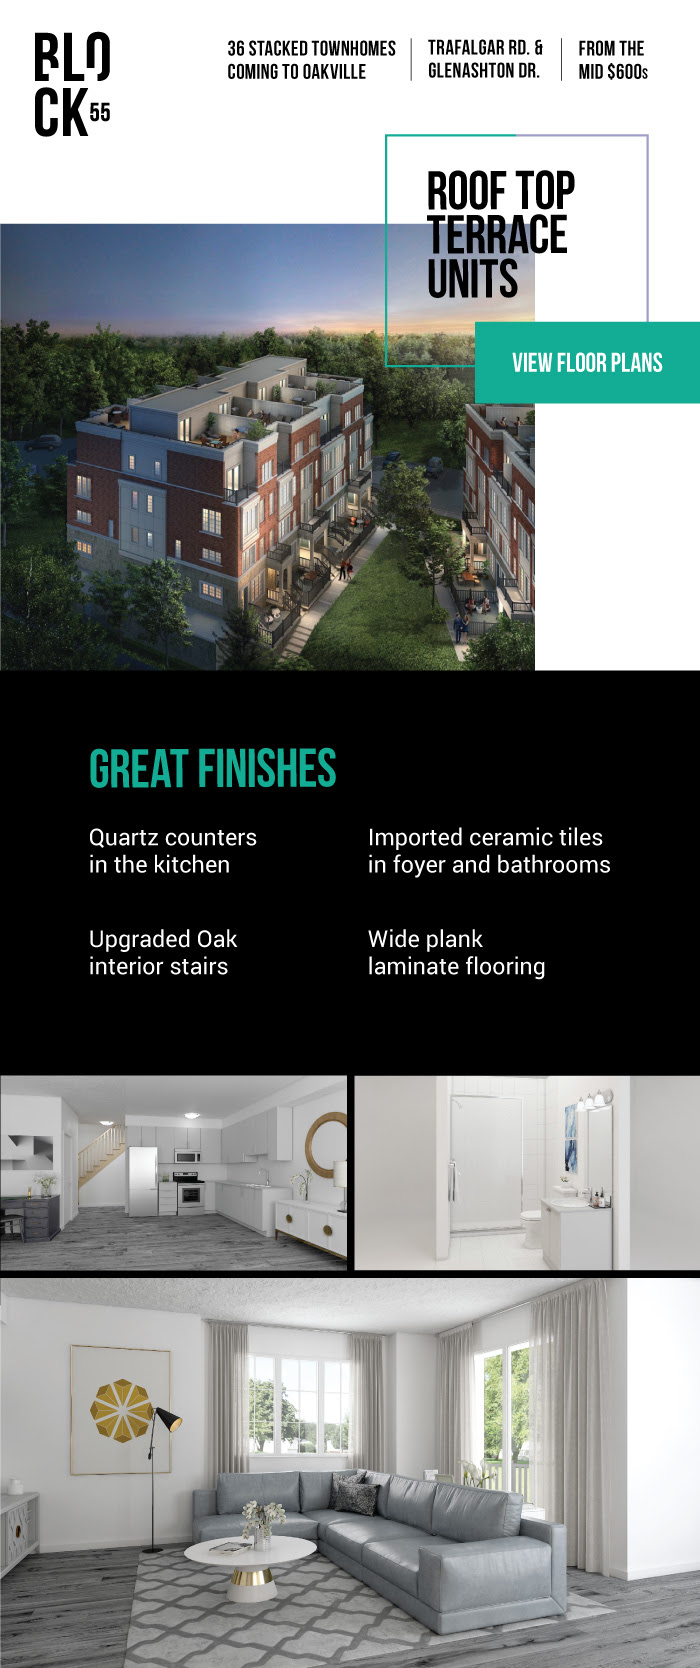 Oakville Townhomes Low Builder Price Move in ready!